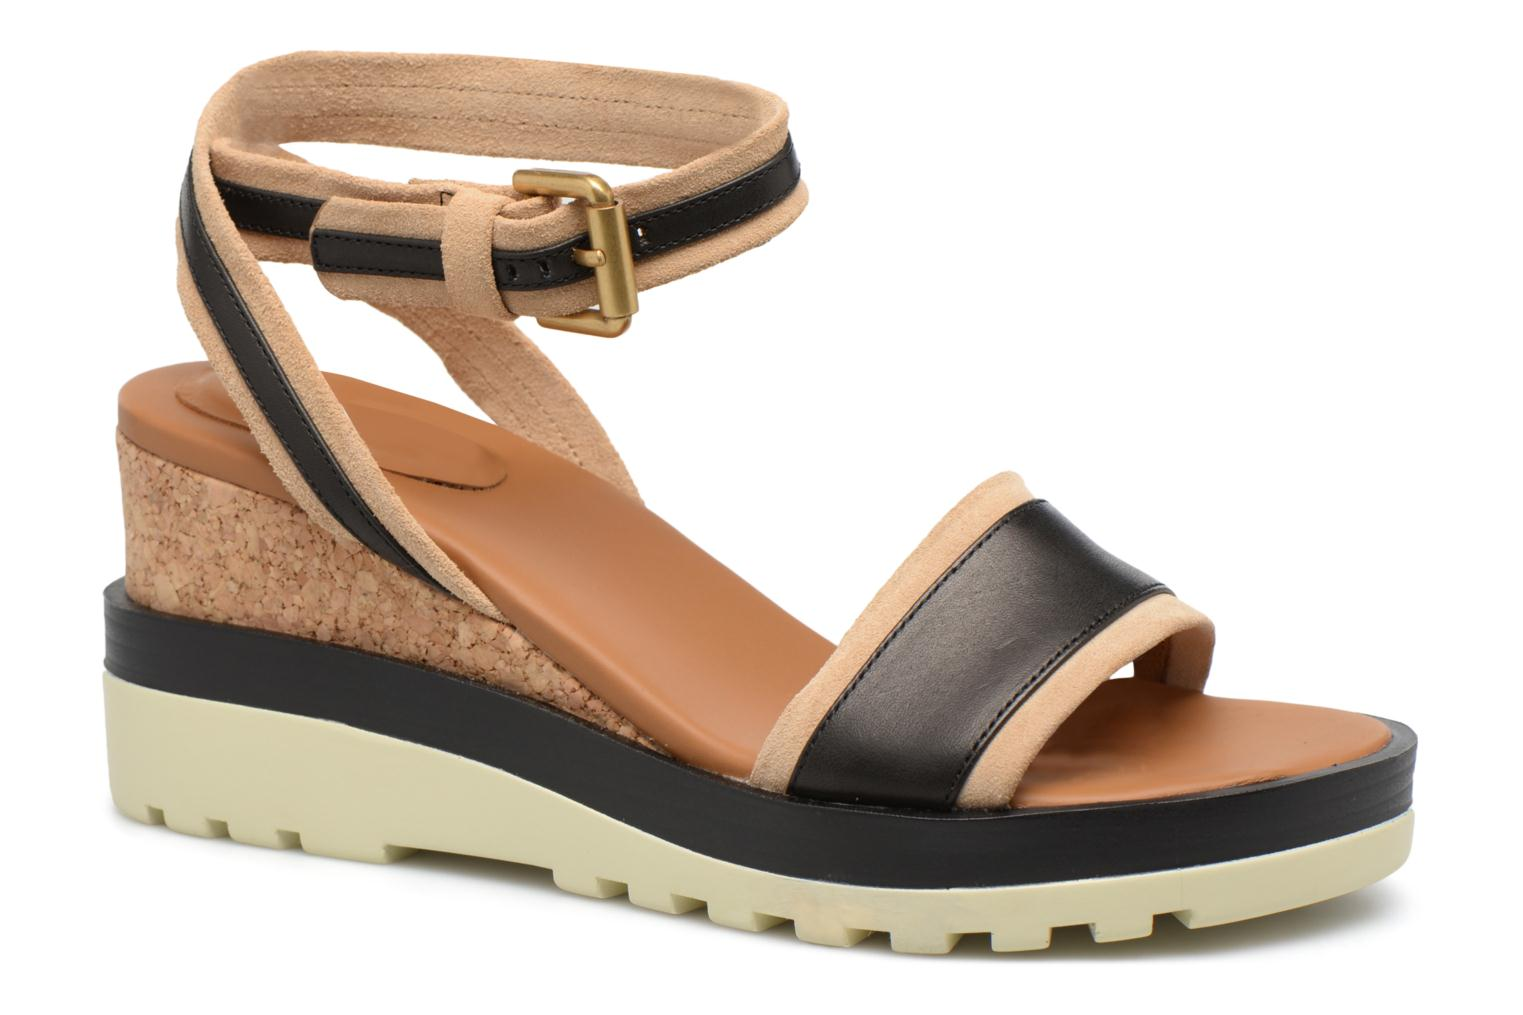 Marques Chaussure luxe femme See by Chloé femme Robin 2 Bronze